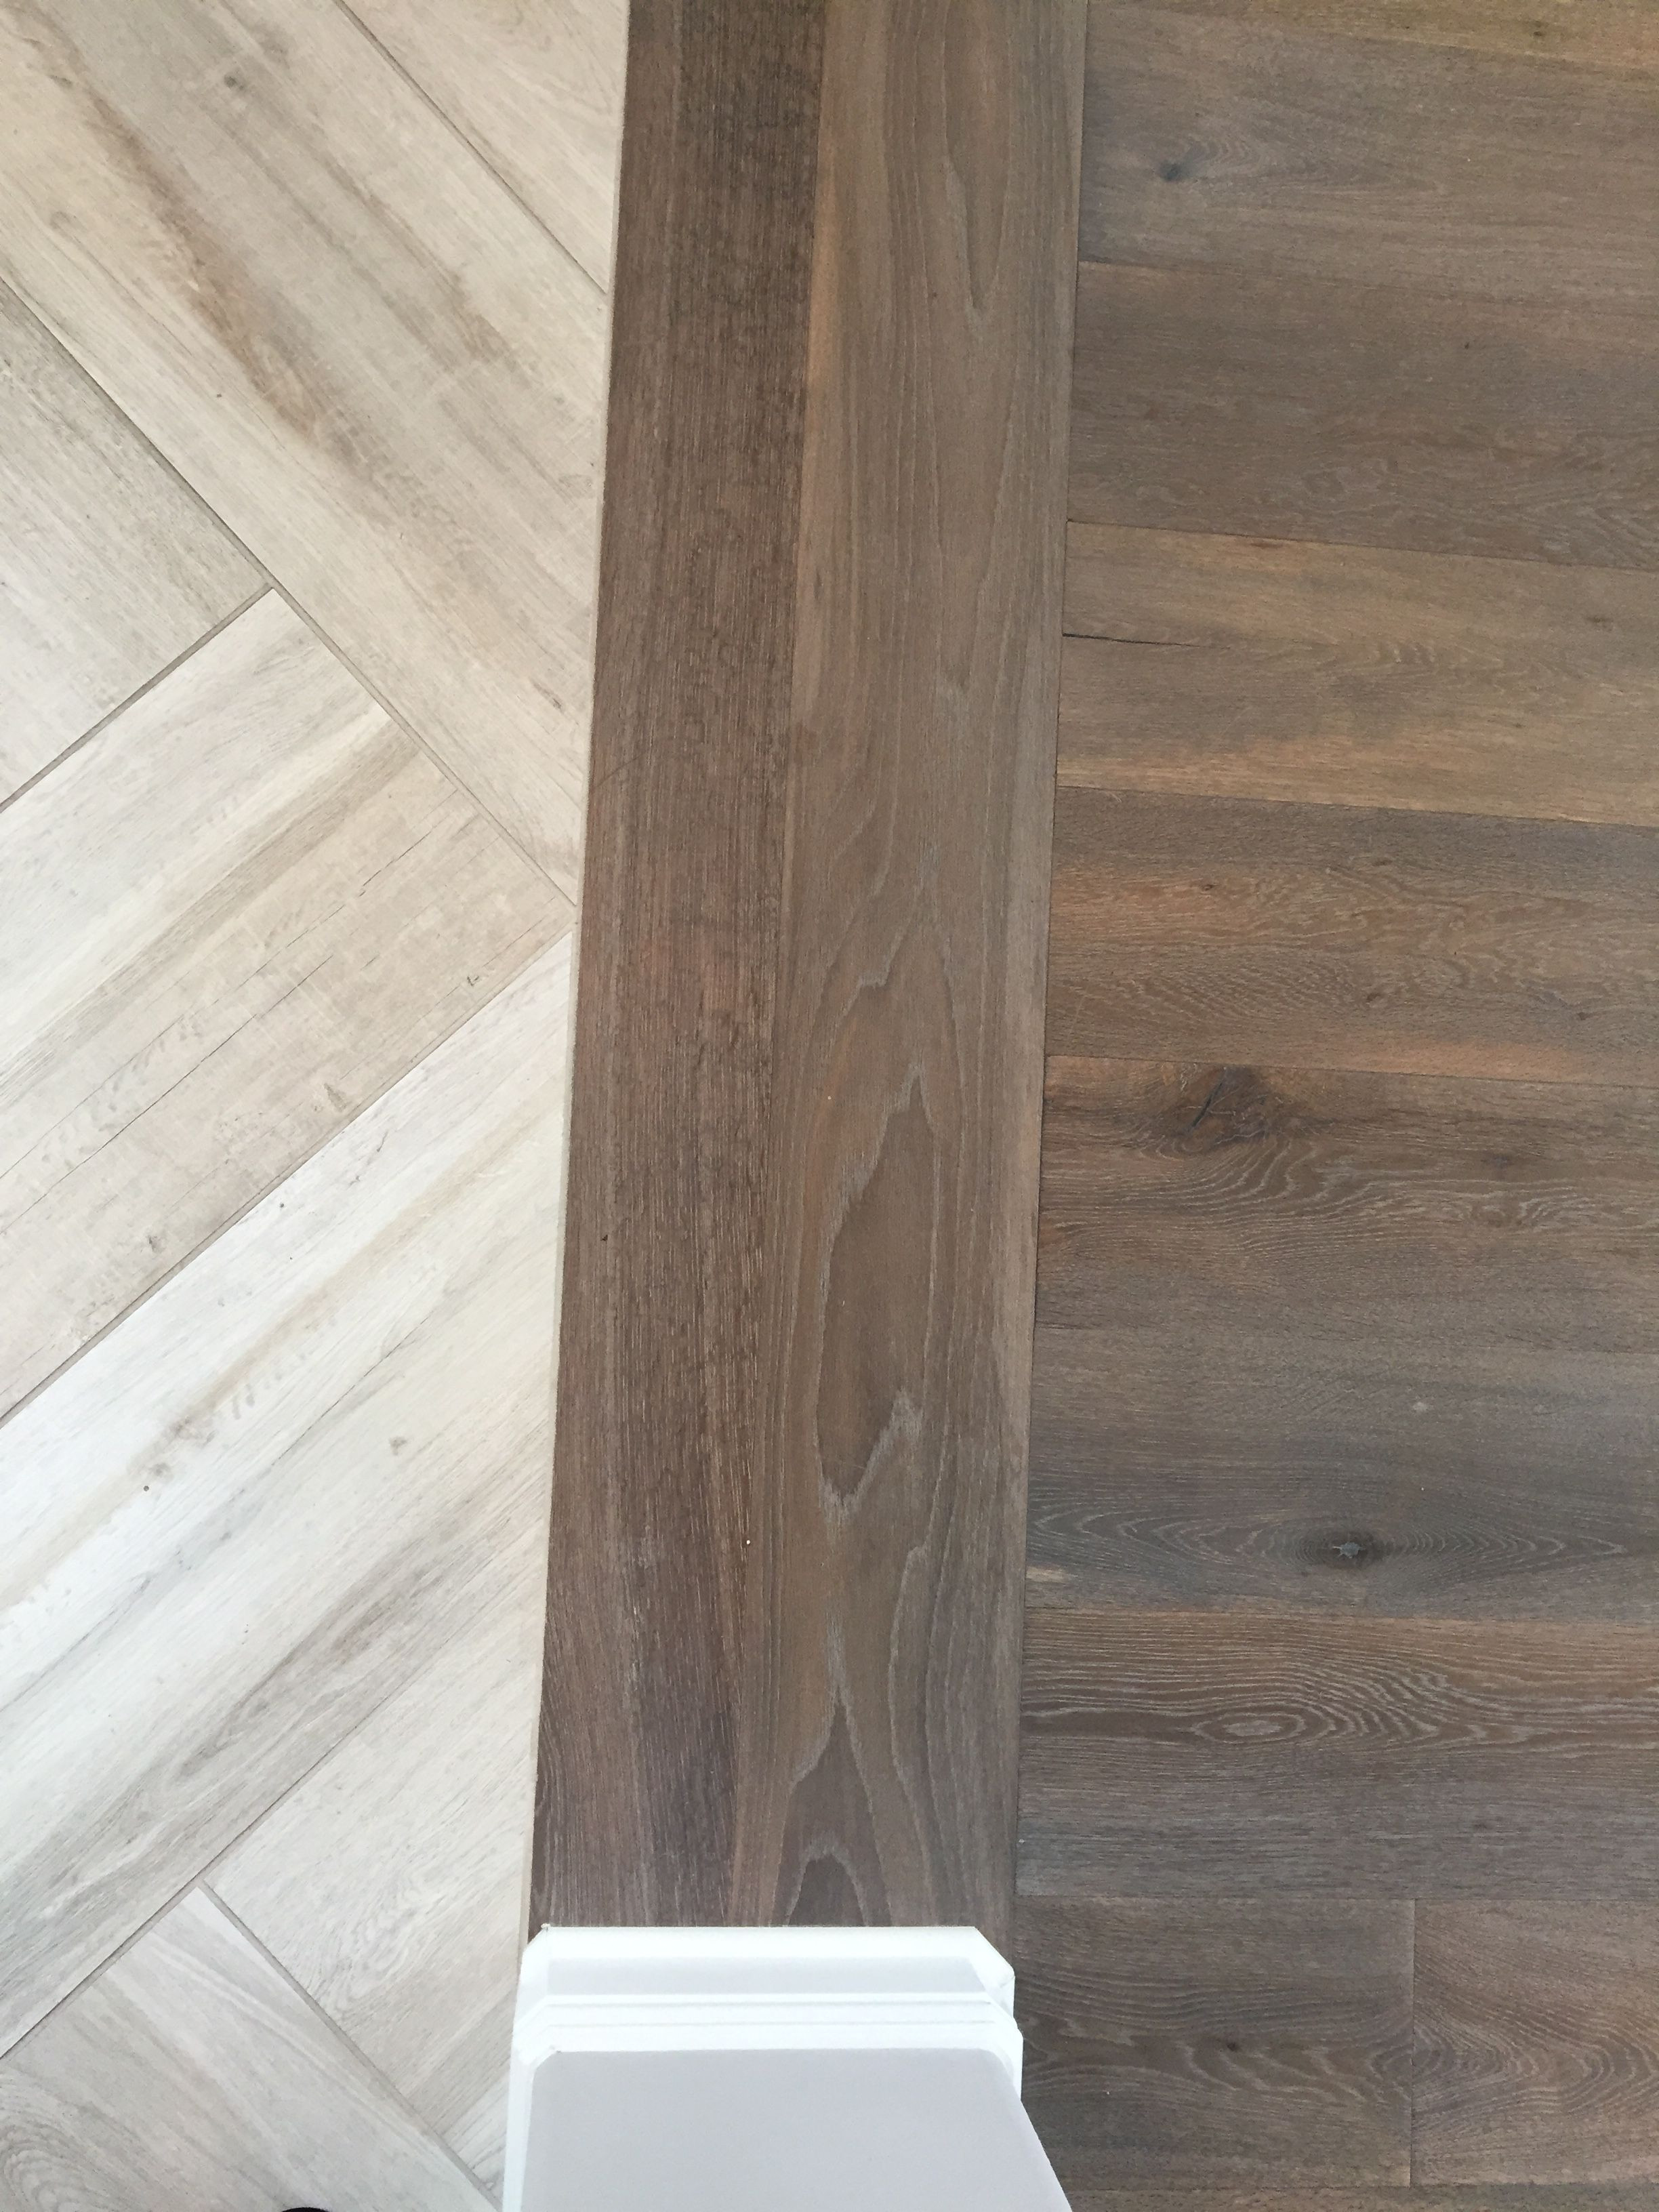 Bruce Engineered Cherry Hardwood Flooring Of Floor Transition Laminate to Herringbone Tile Pattern Model Throughout Floor Transition Laminate to Herringbone Tile Pattern Herringbone Tile Pattern Herringbone Wood Floor